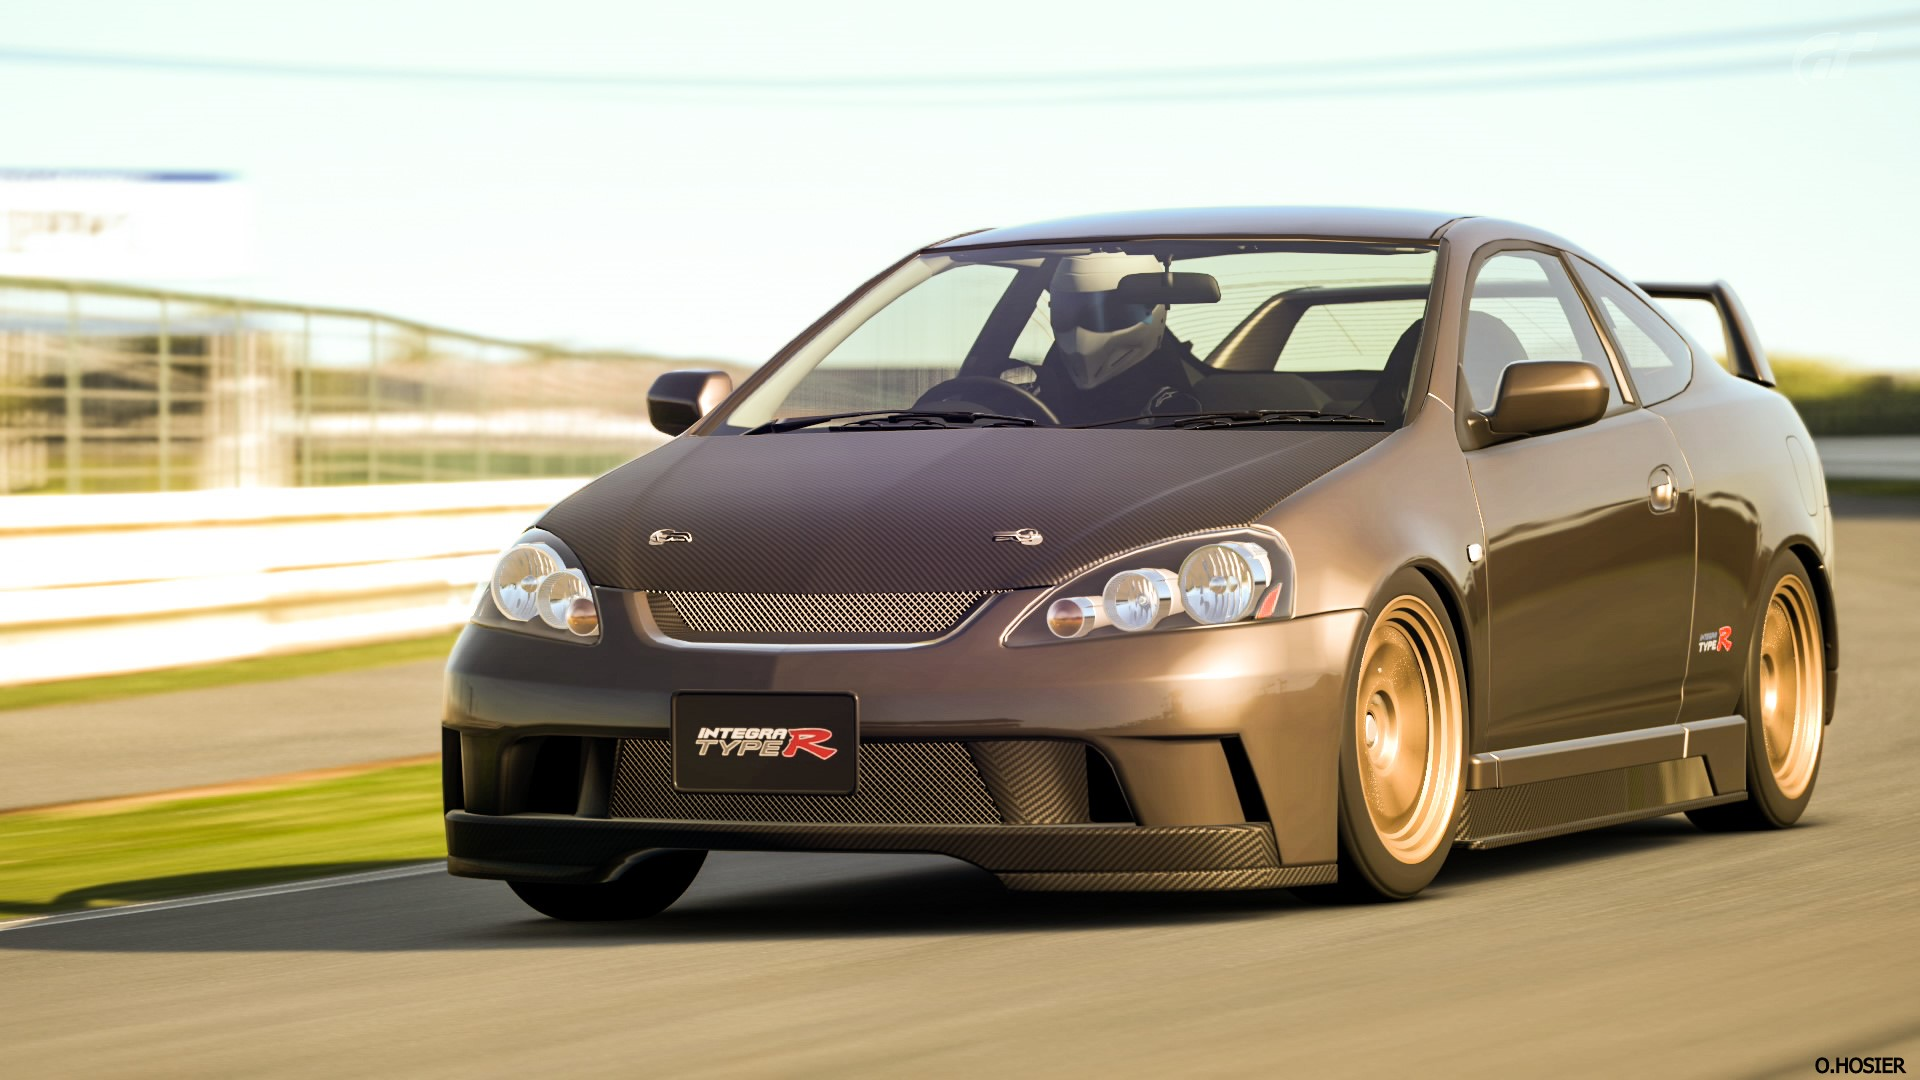 Hey Any Acura Rsx Type S Wallpapers Or 4th Gen Mitubishi Eclipse